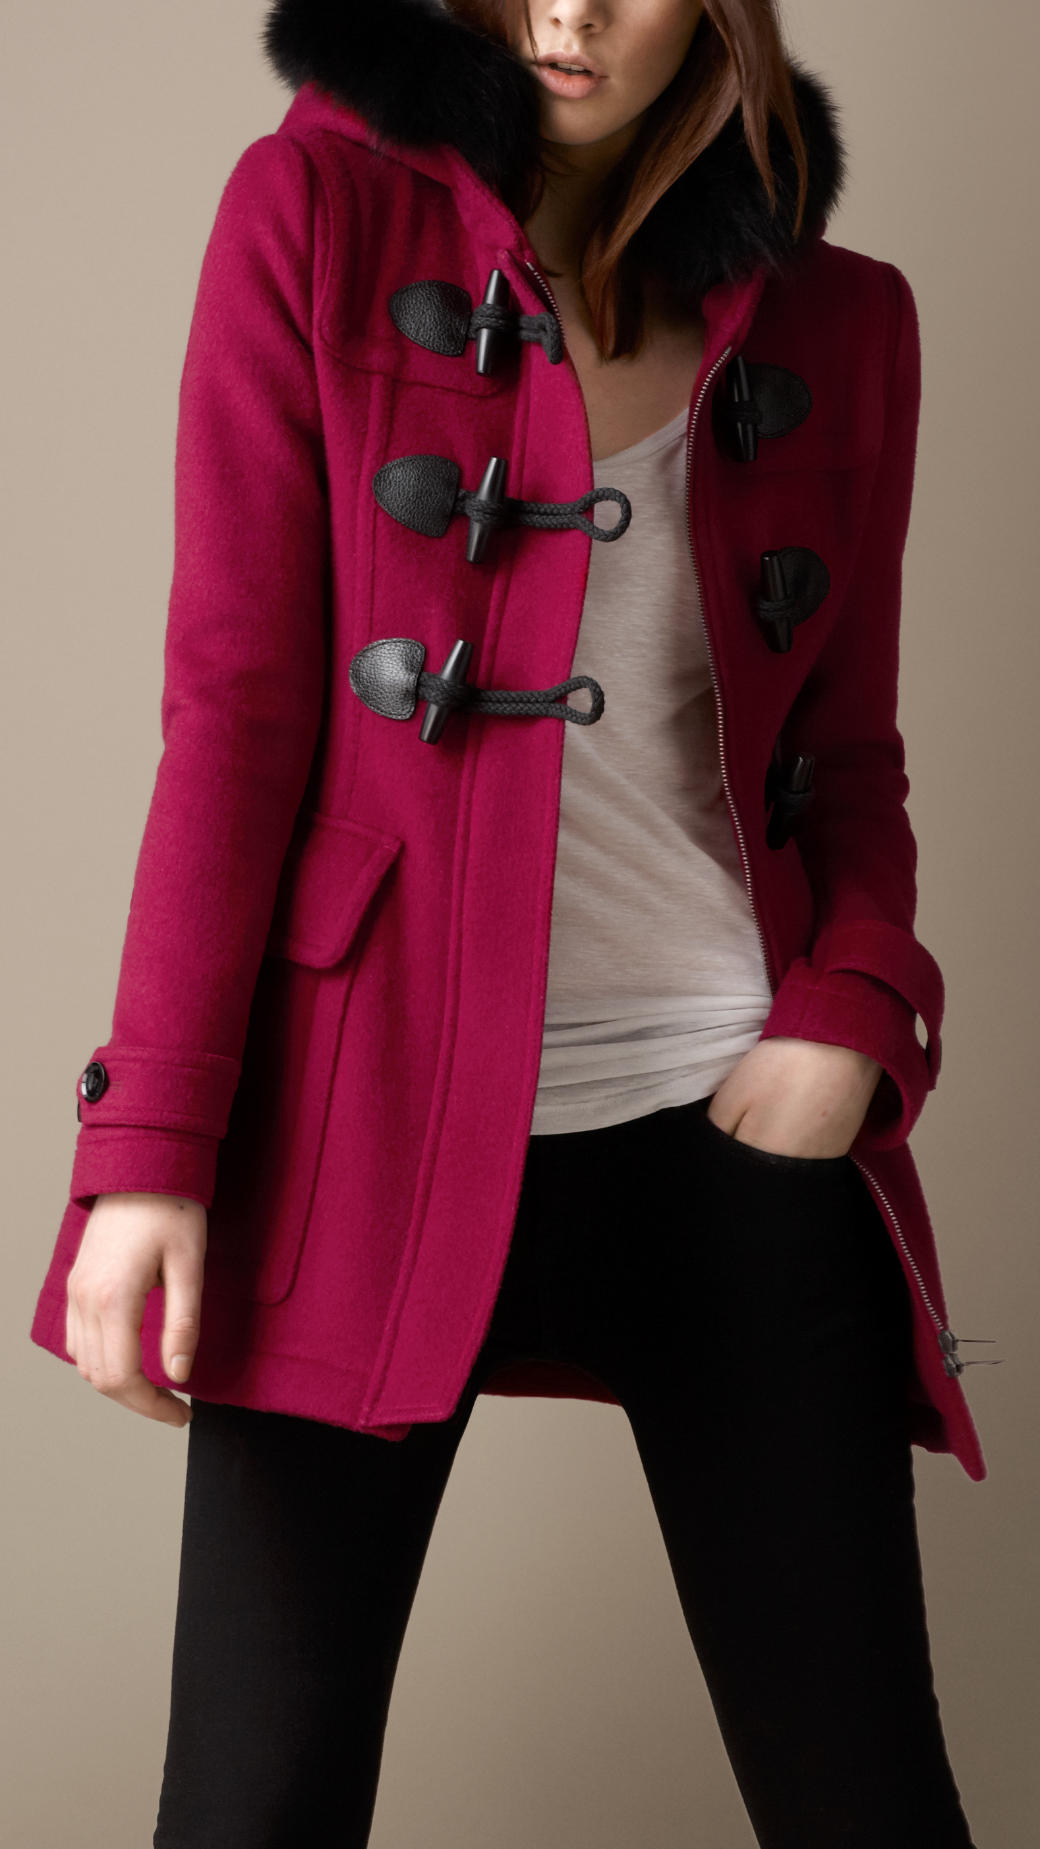 Burberry Fur Trim Fitted Duffle Coat in Pink | Lyst